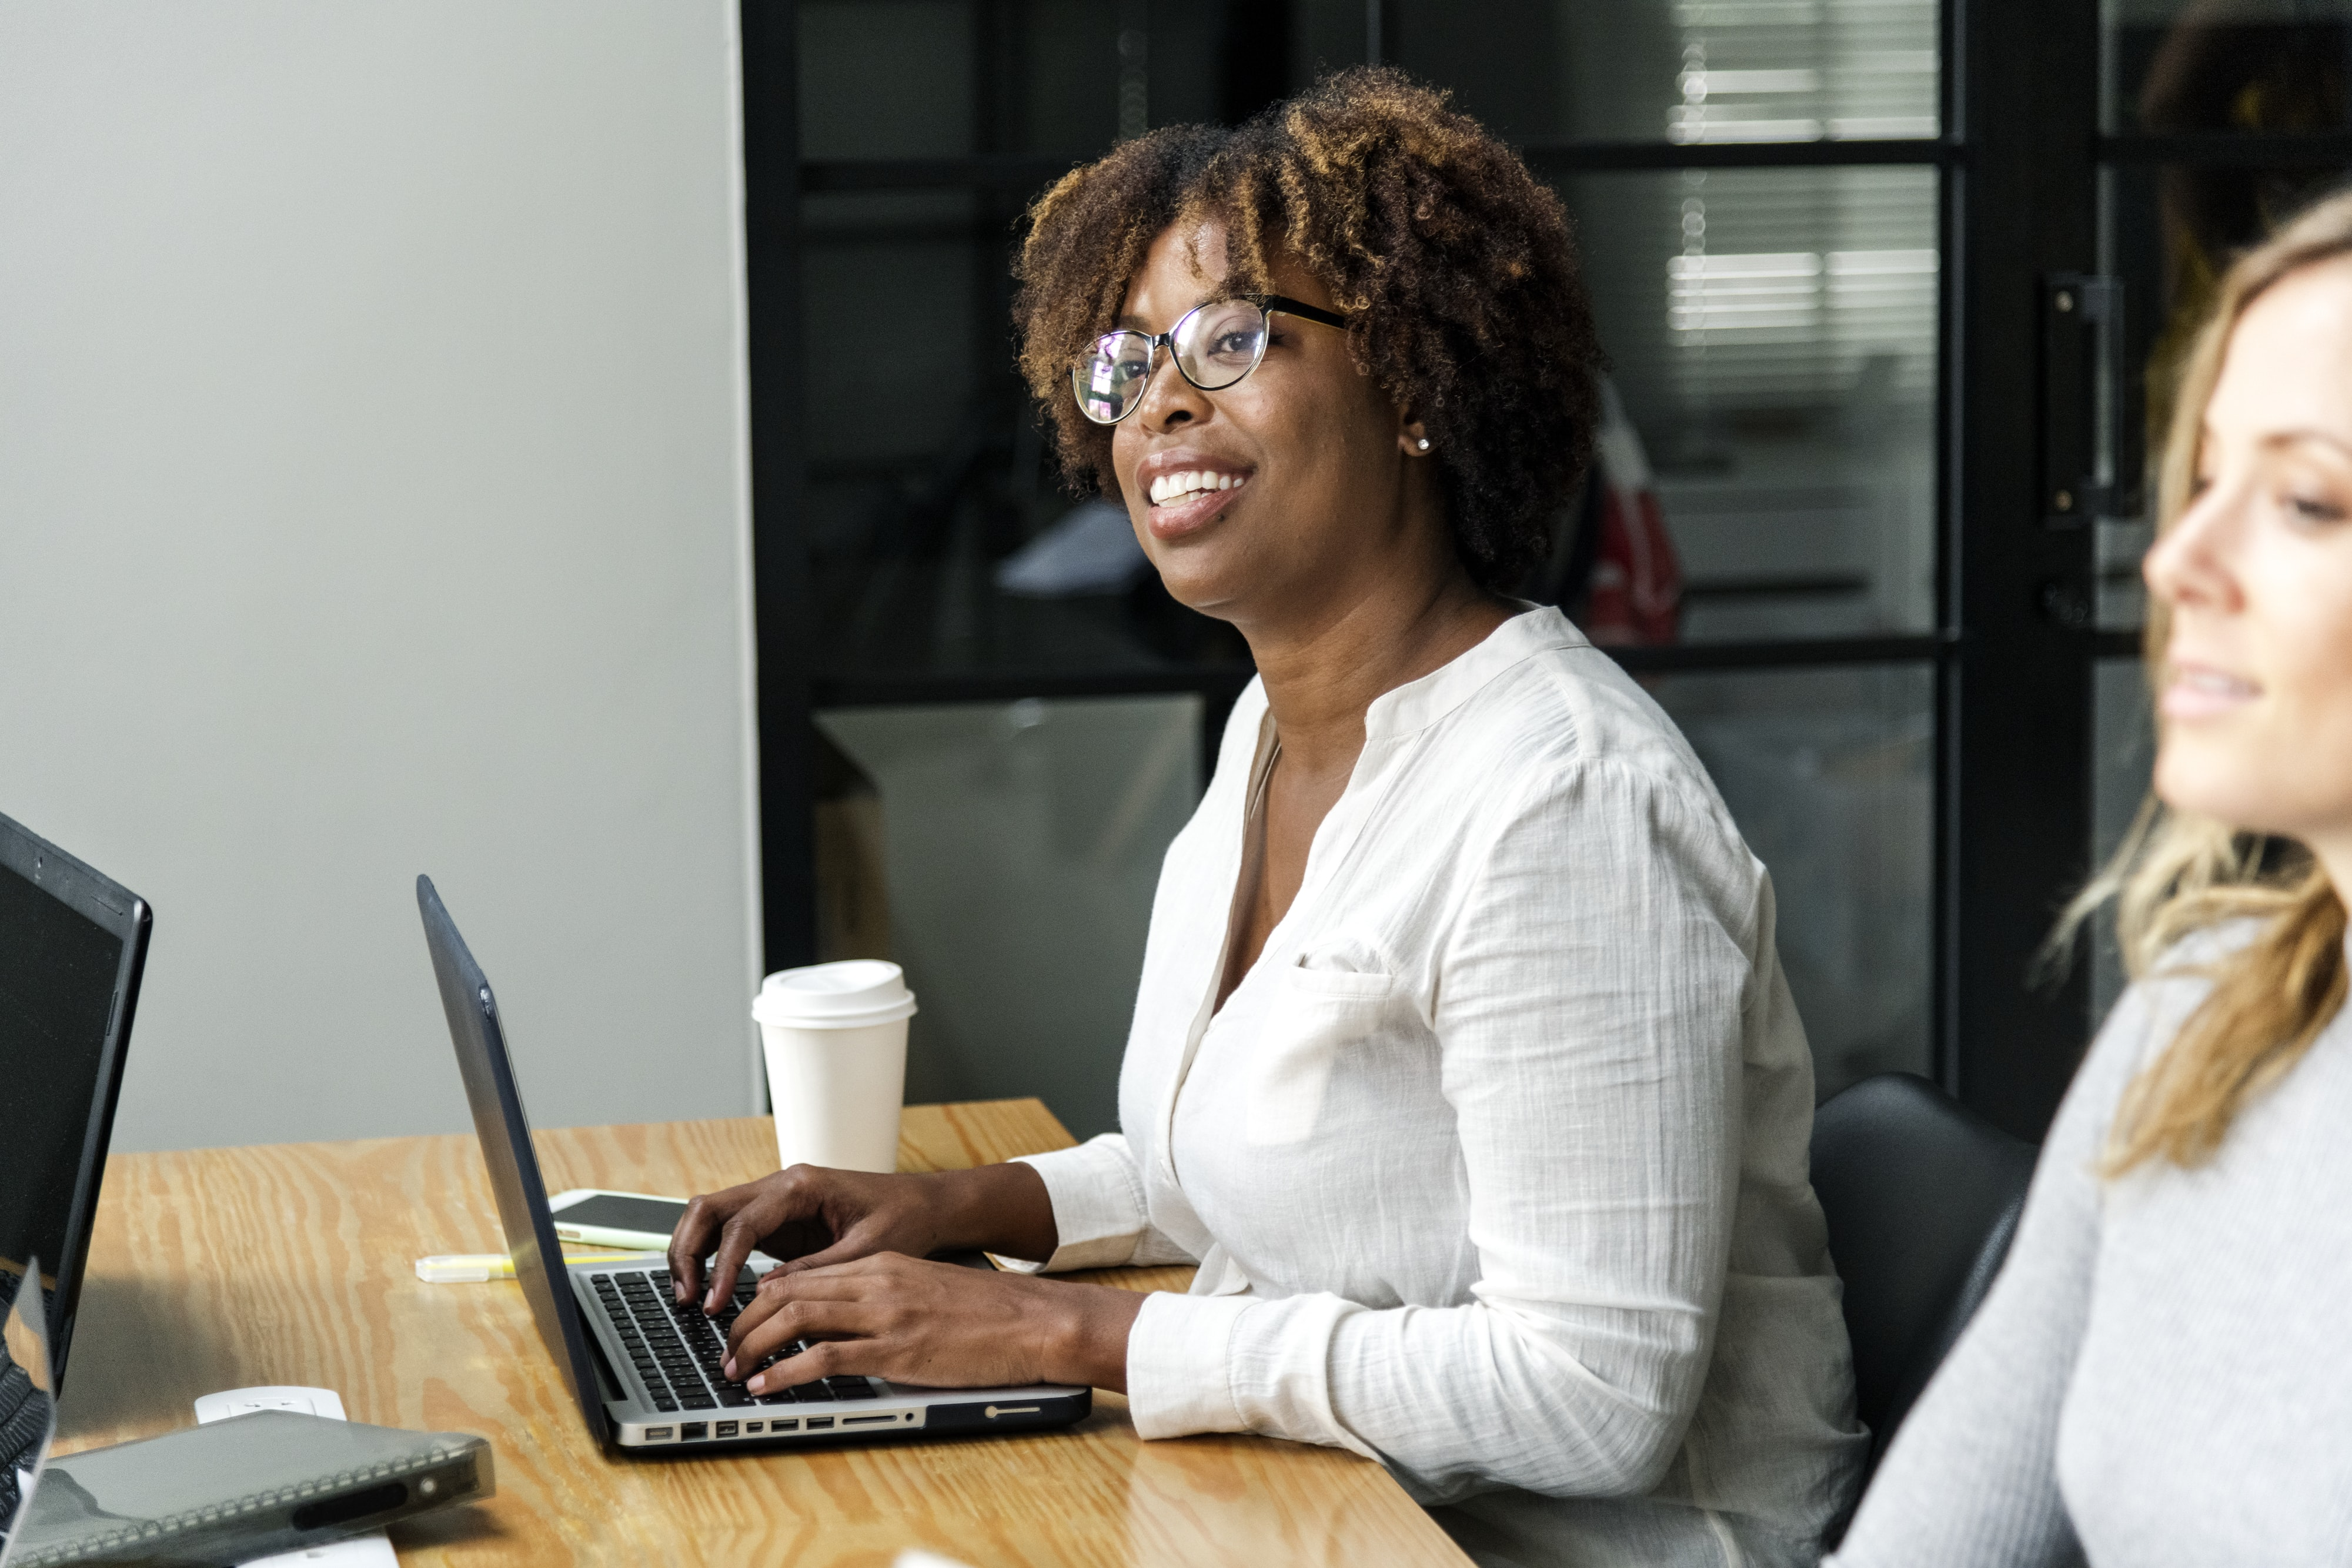 woman sitting on chair leaning on laptop computer